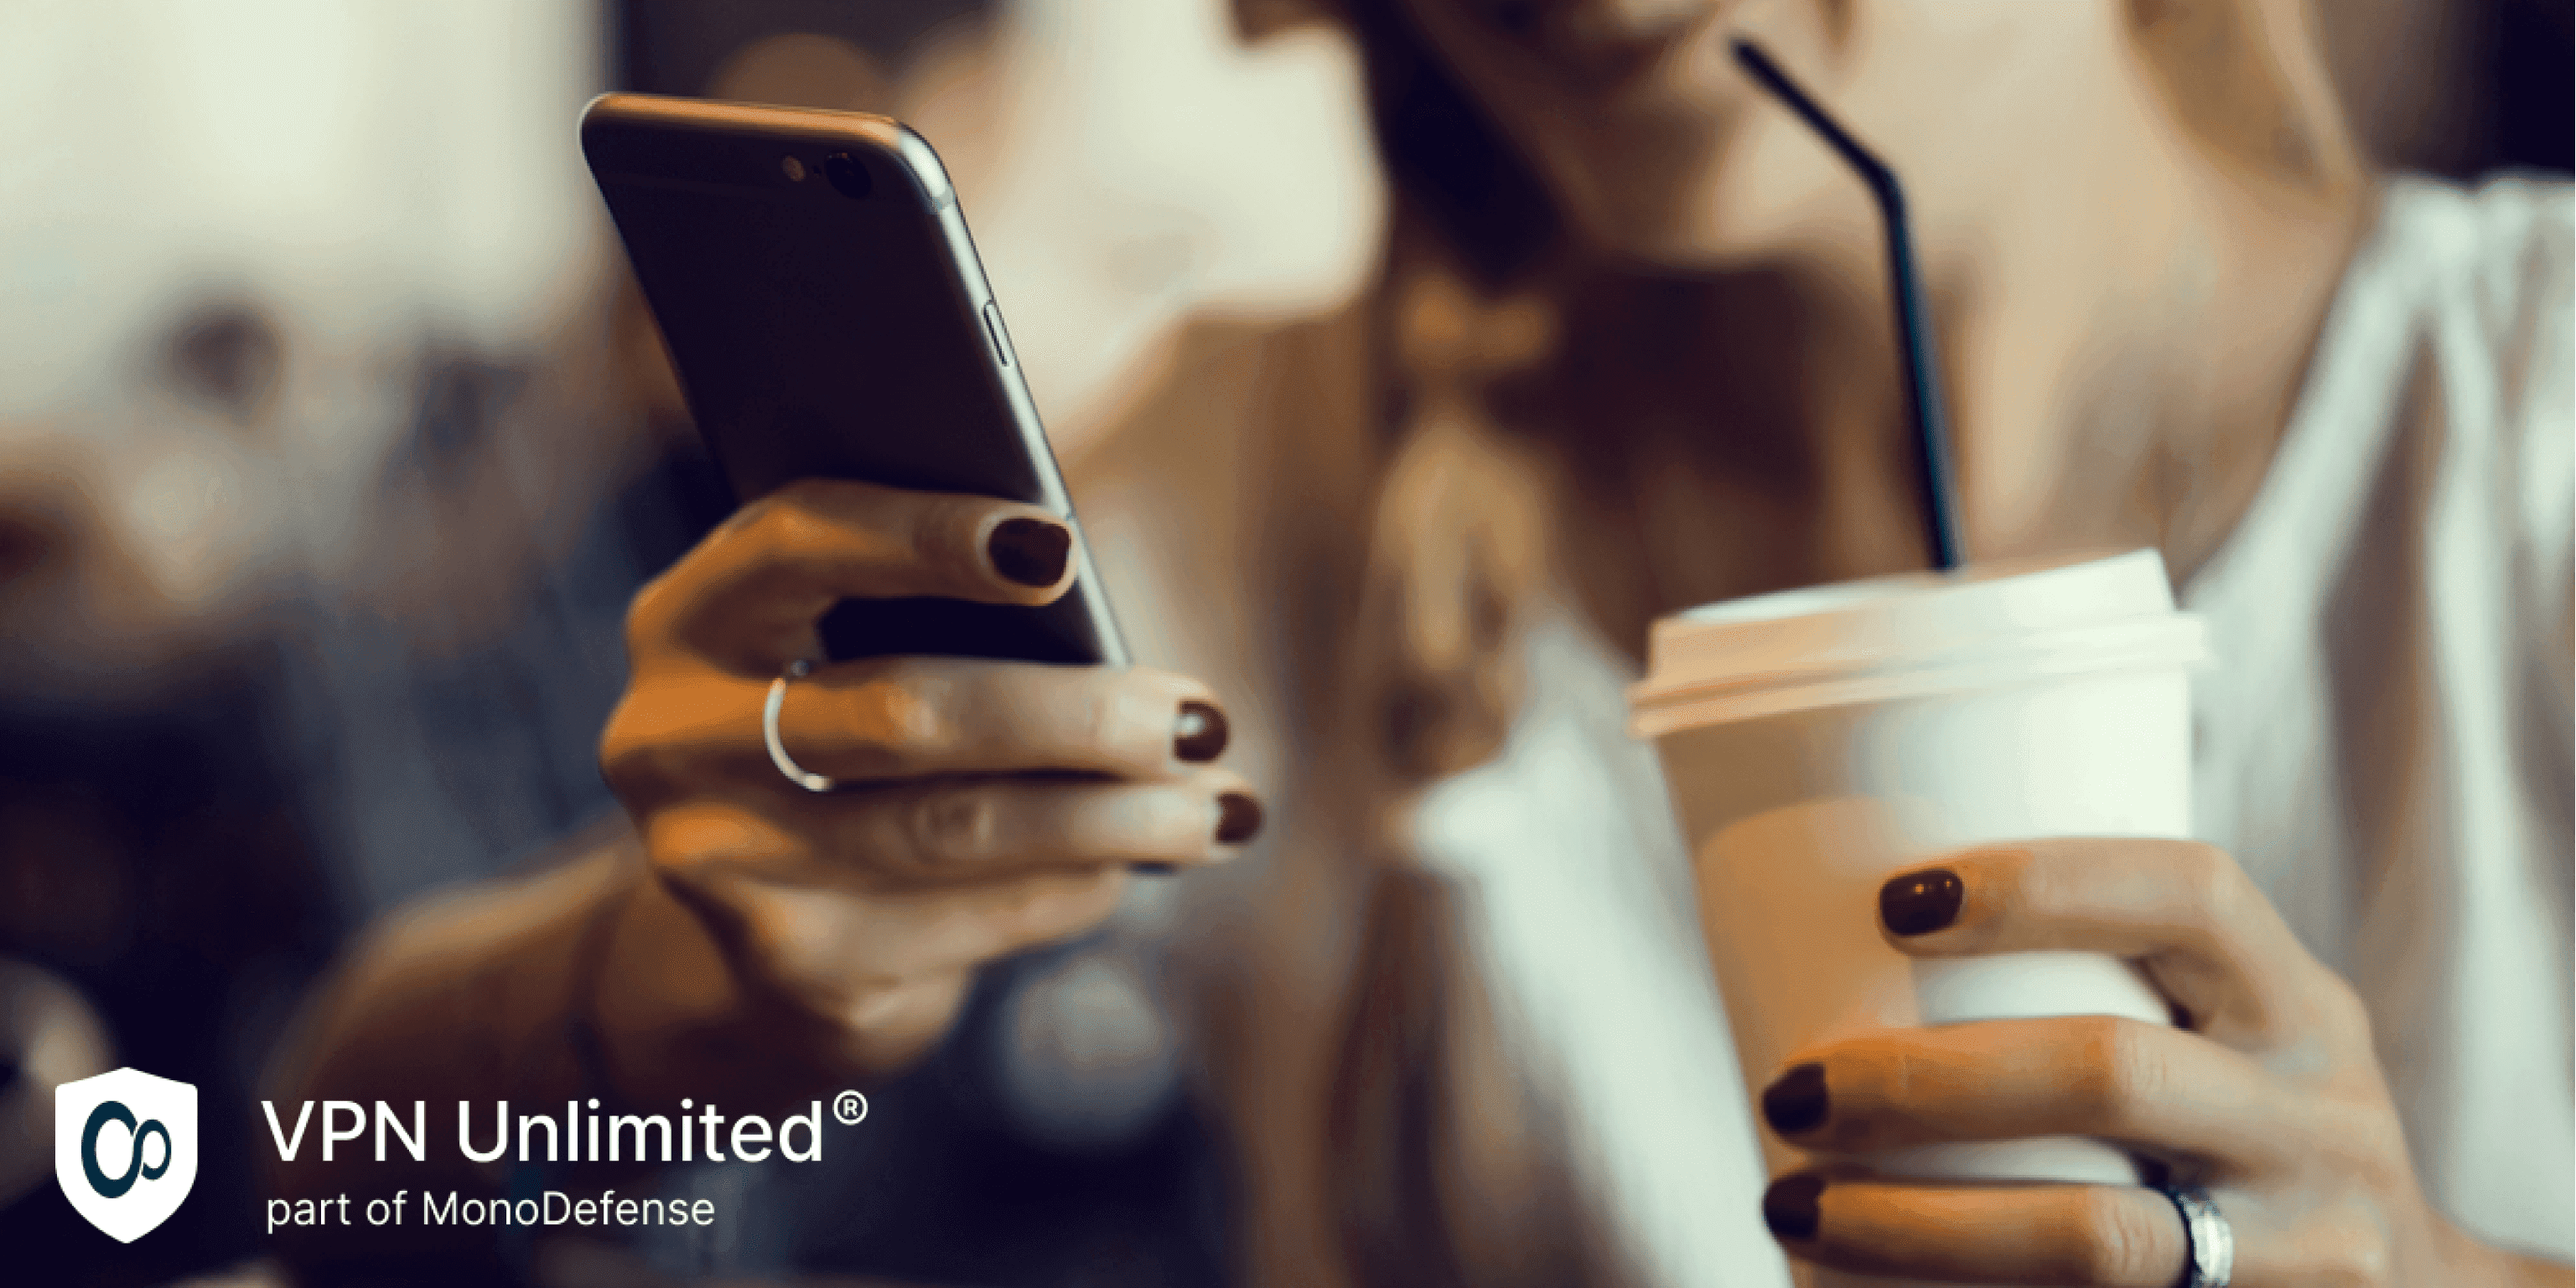 Woman in cafe using iPhone connected to public WiFi, concept of online protection with VPN on free WiFi